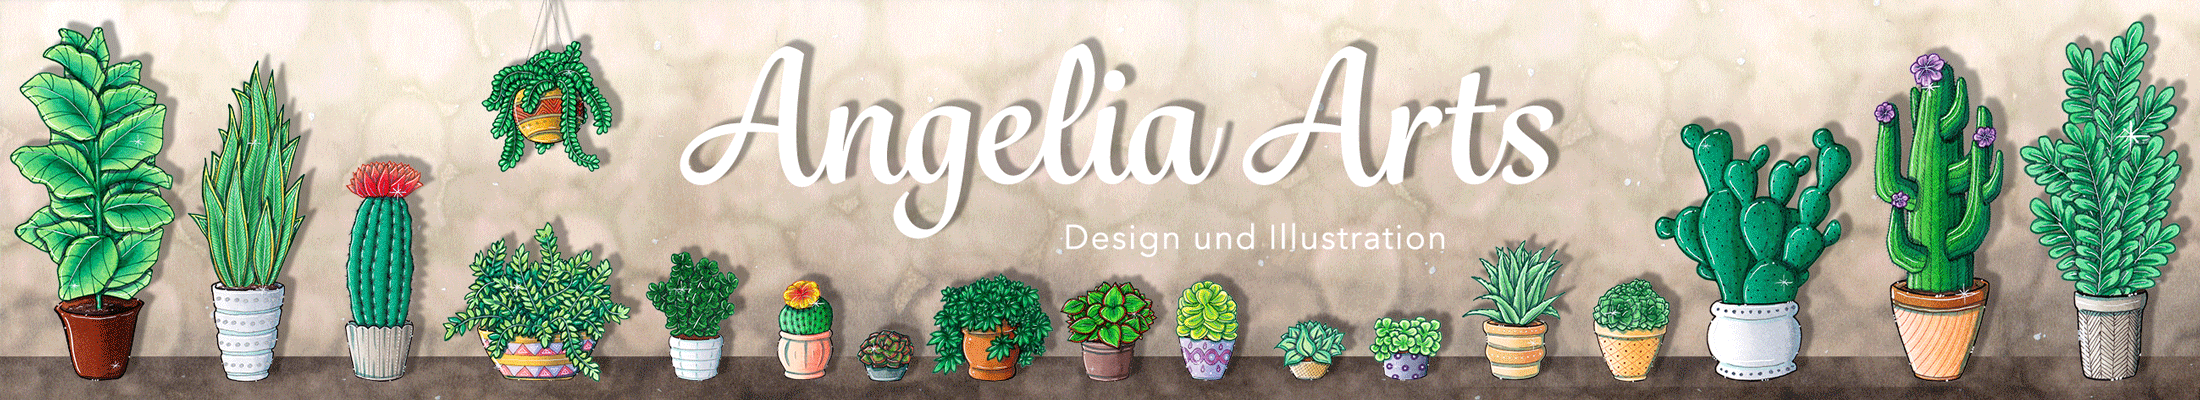 Angelia Arts